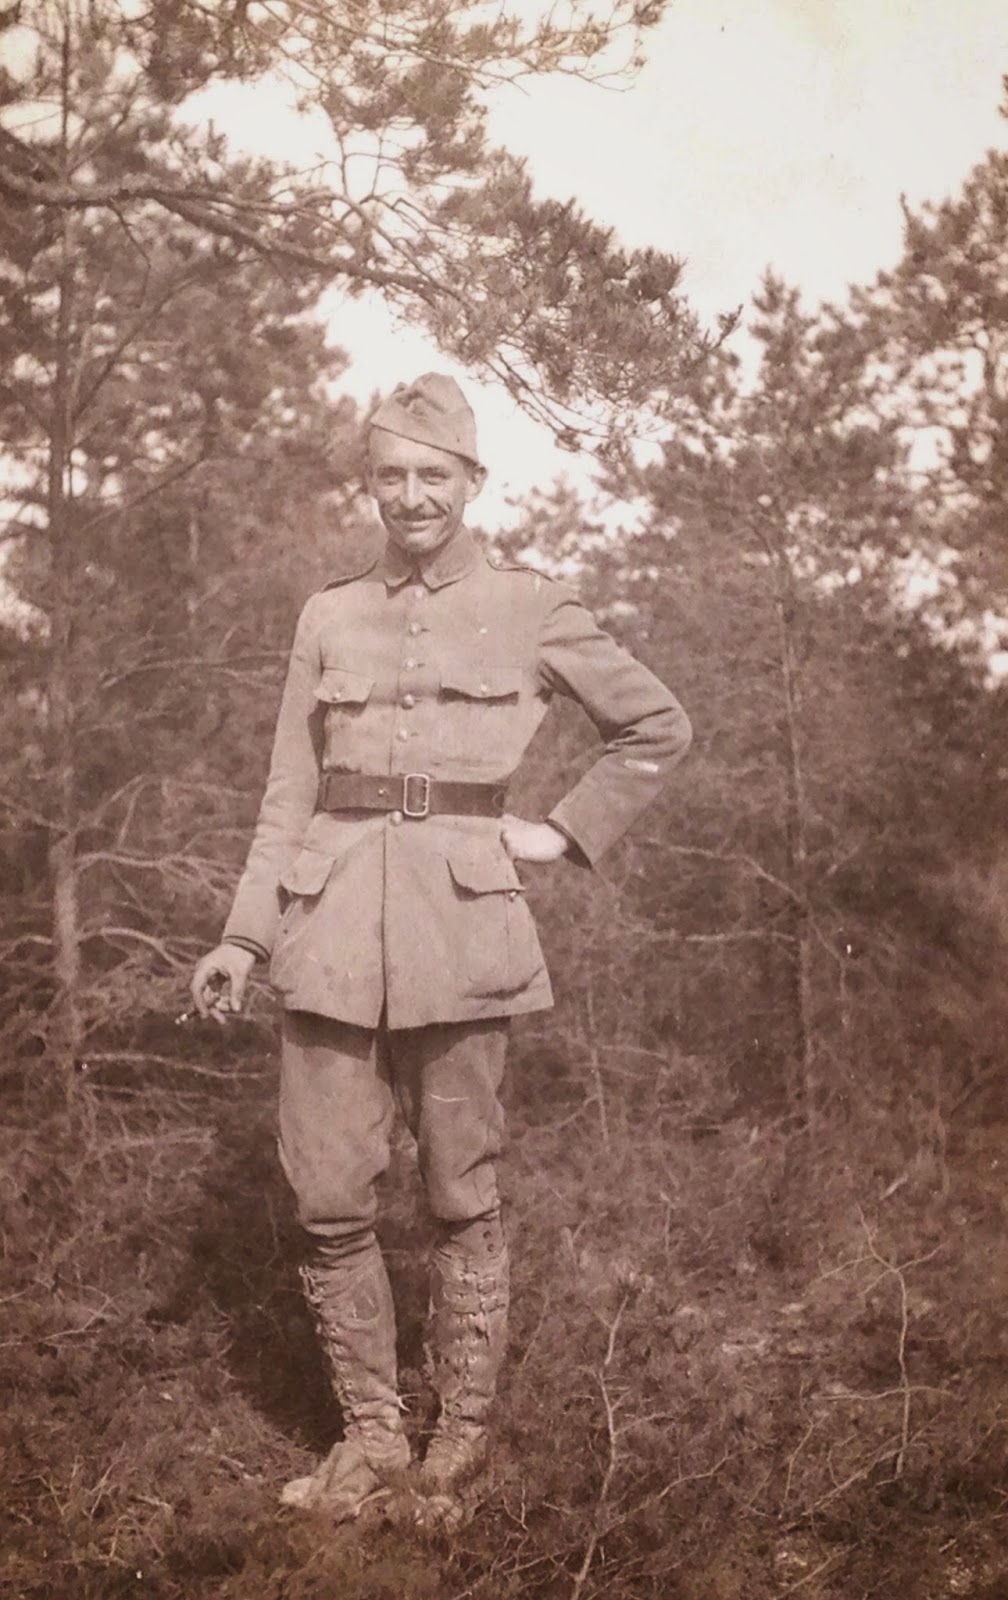 A photograph of a man in uniform.